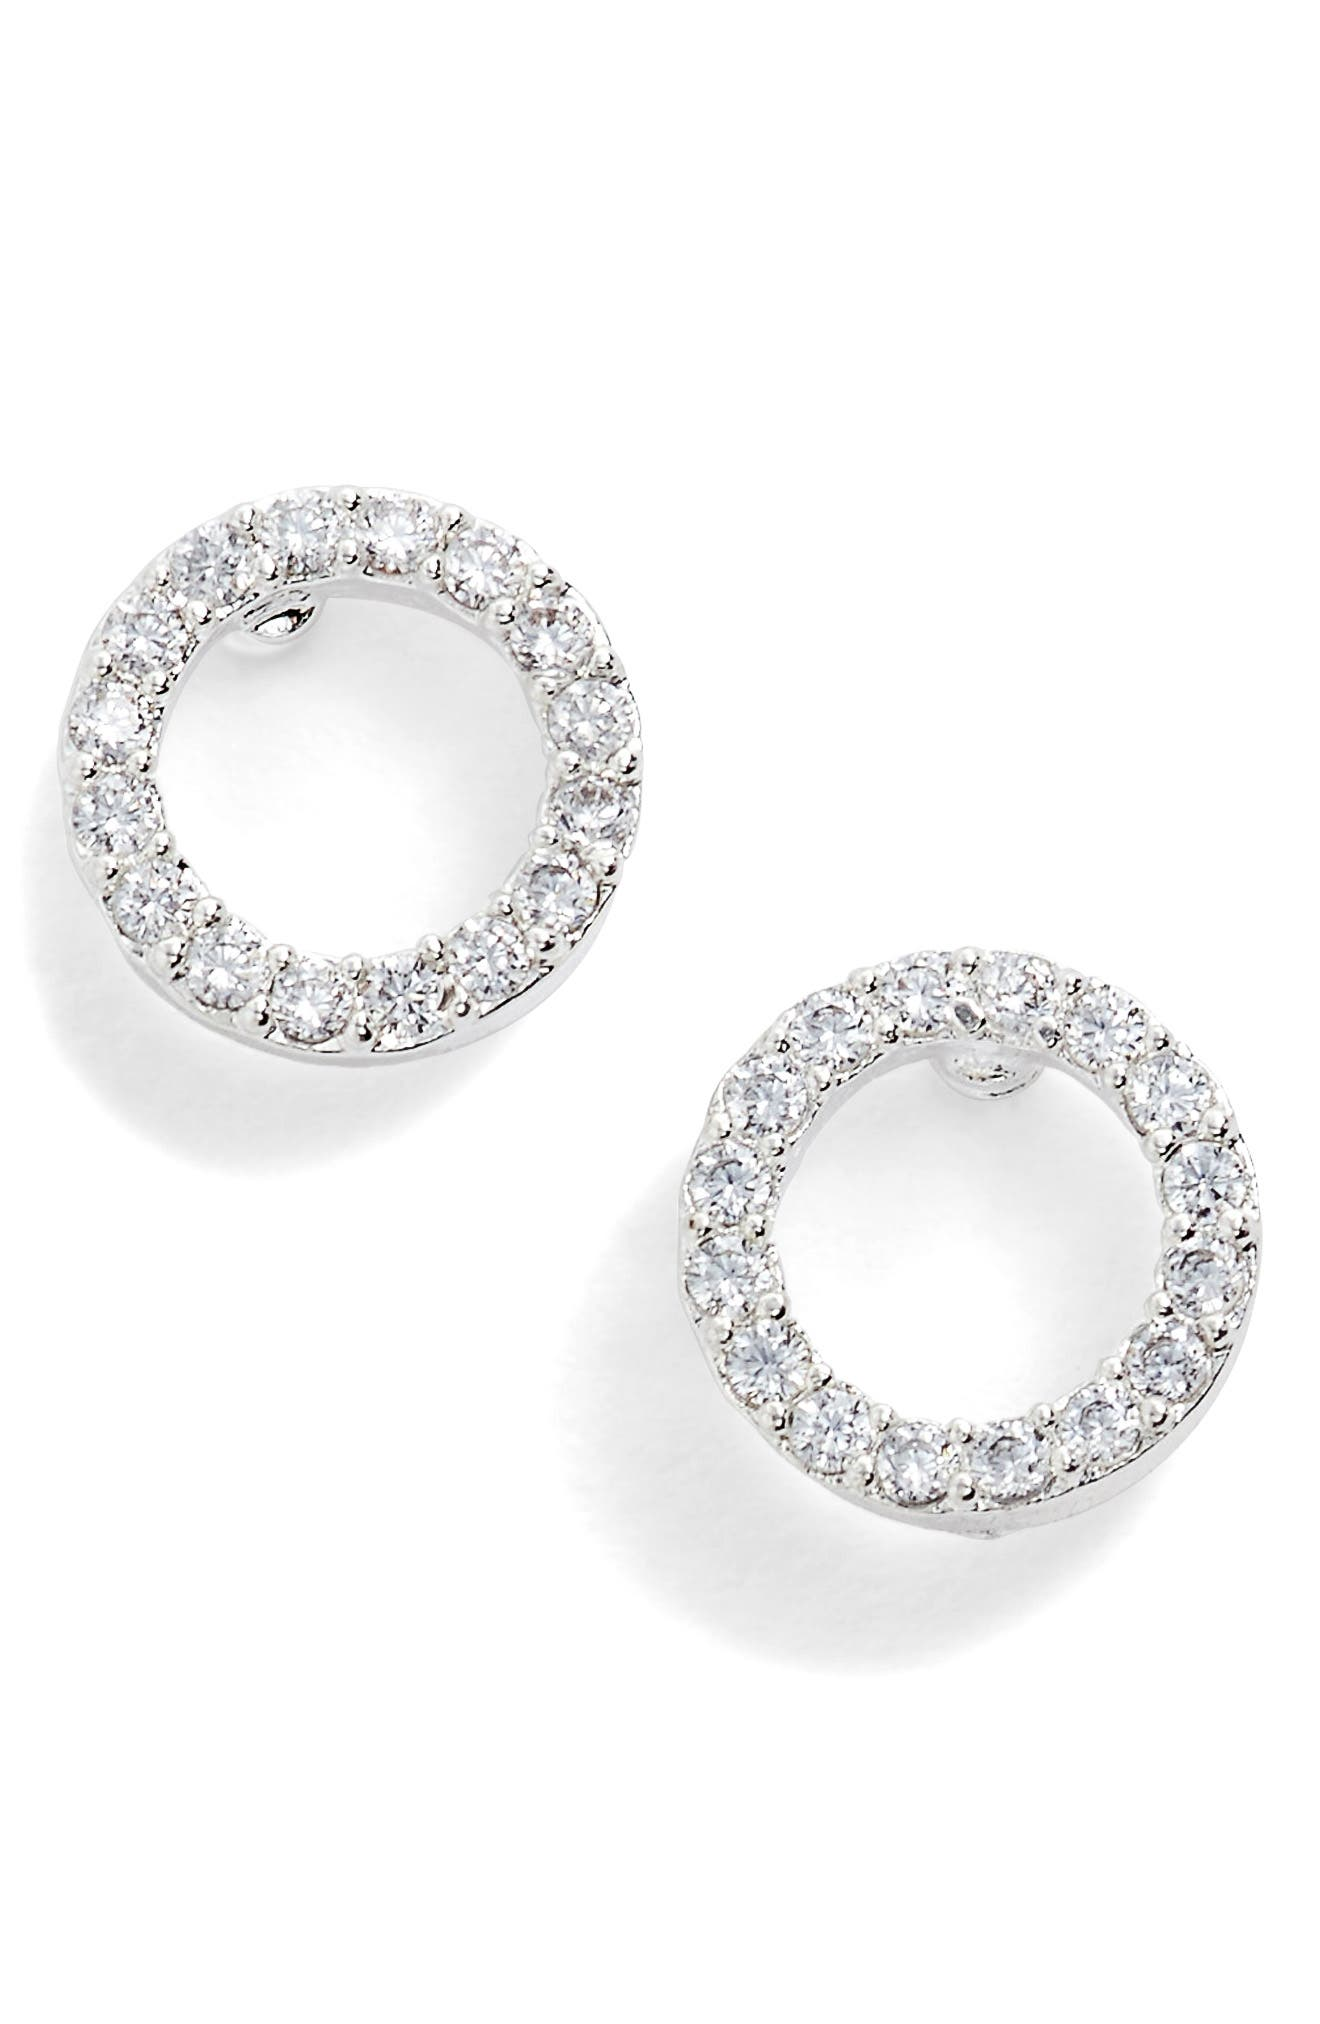 Cubic Zirconia Circle Earrings,                             Alternate thumbnail 2, color,                             Silver